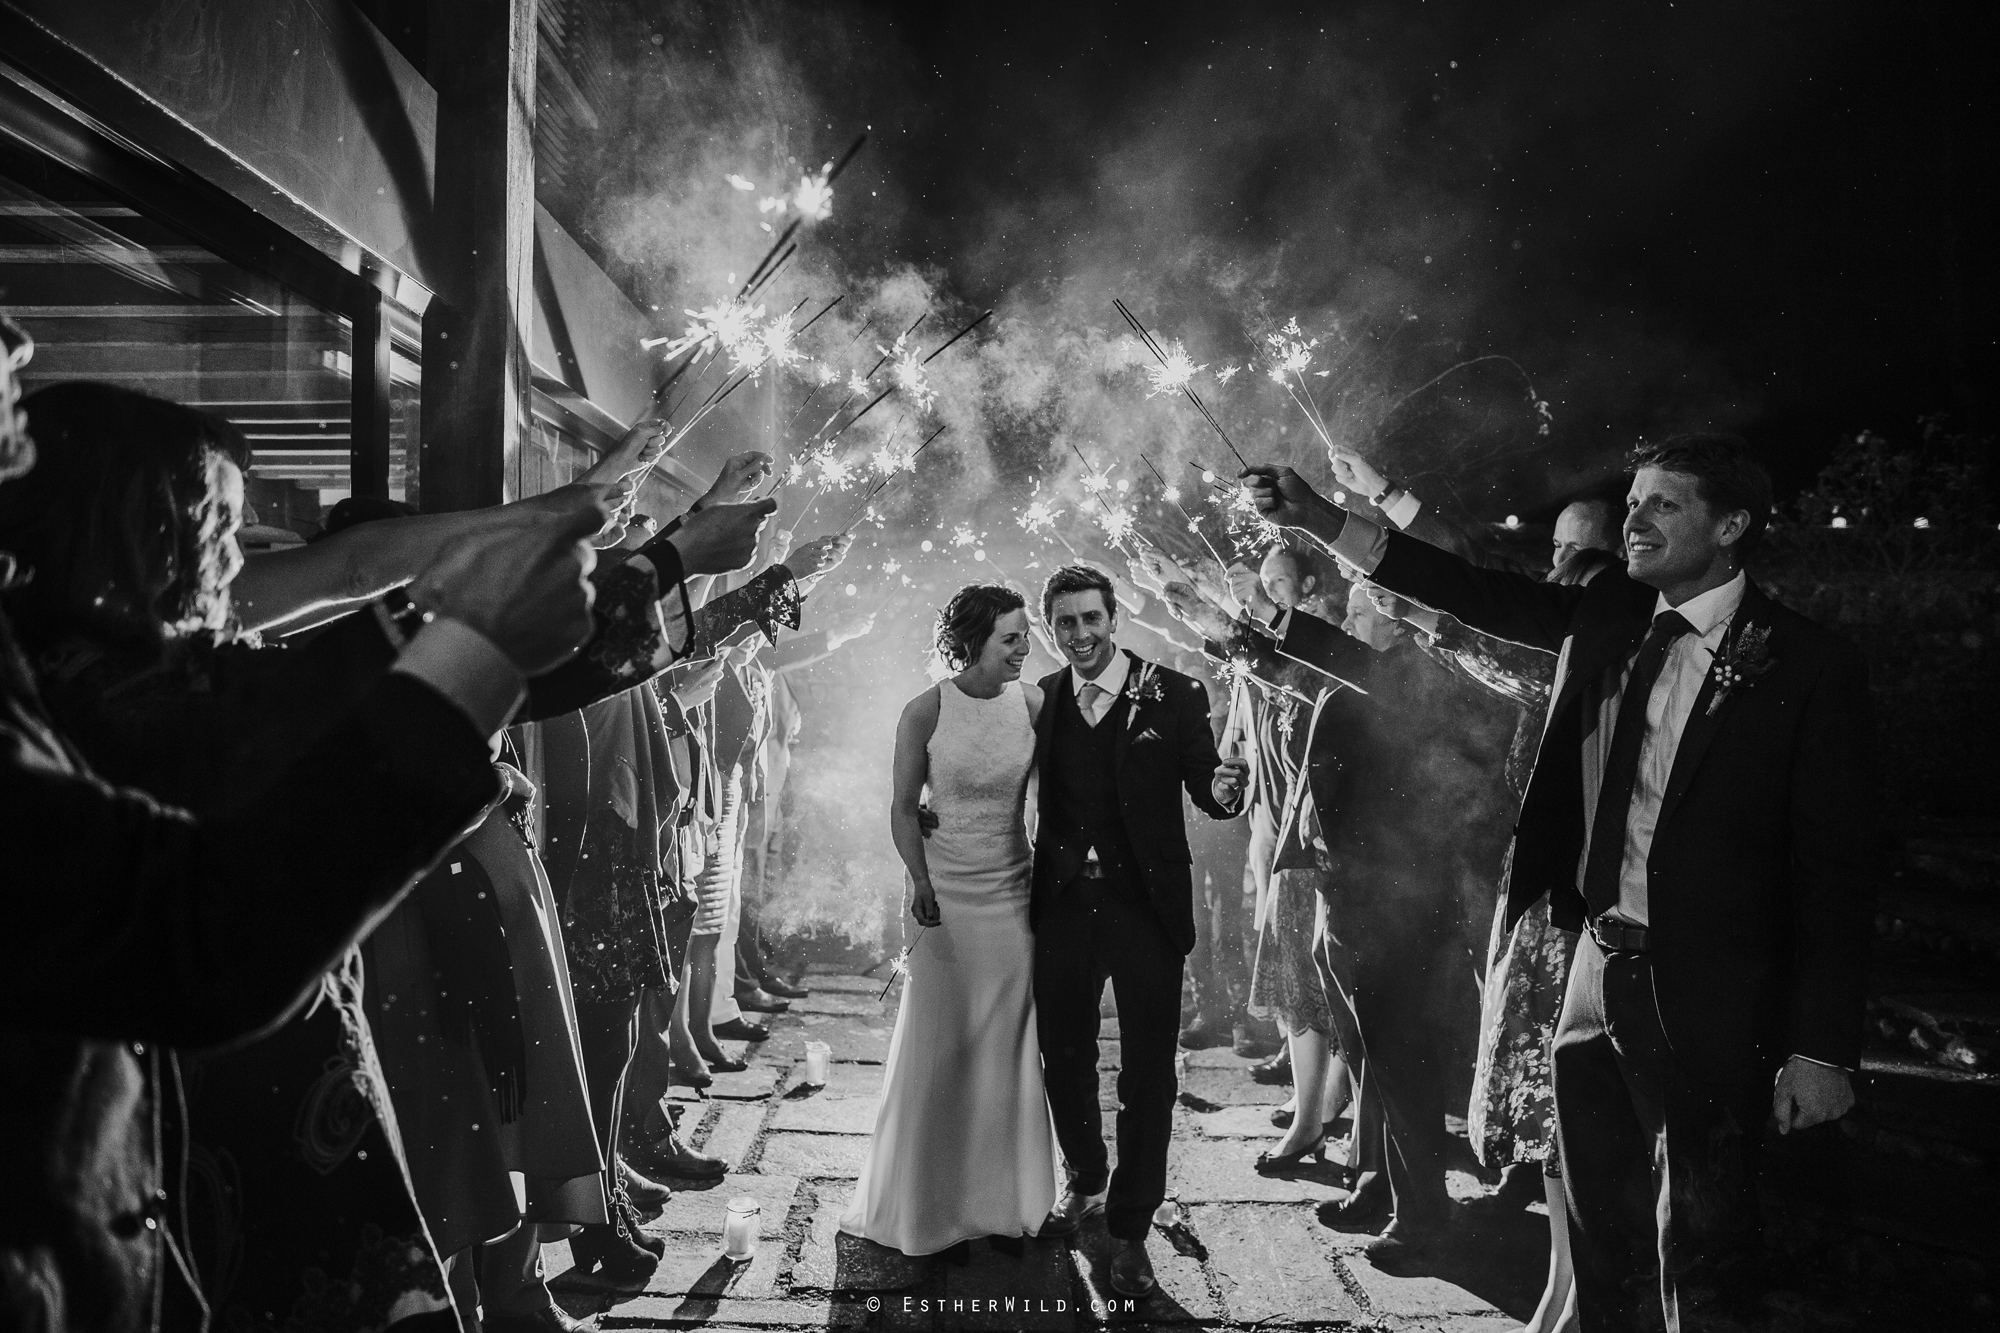 Wedding_Photographer_Chaucer_Barn_Holt_Norfolk_Country_Rustic_Venue_Copyright_Esther_Wild_IMG_2172-2.jpg